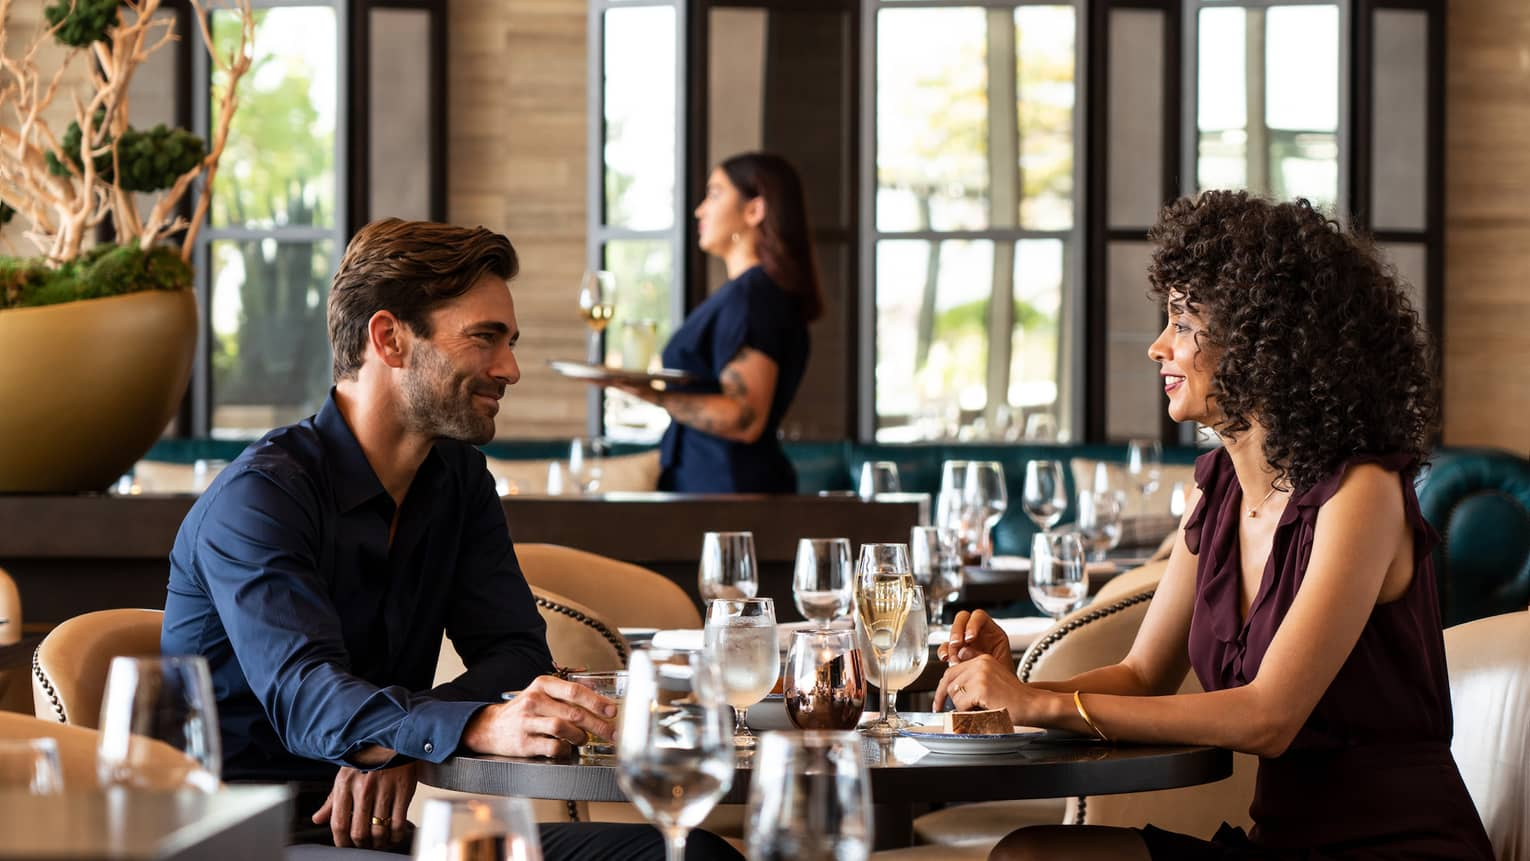 A man and woman enjoy a date at trendy cinderhouse – furnished with black square tables, camel leather colored chairs, and modern sconce lighting